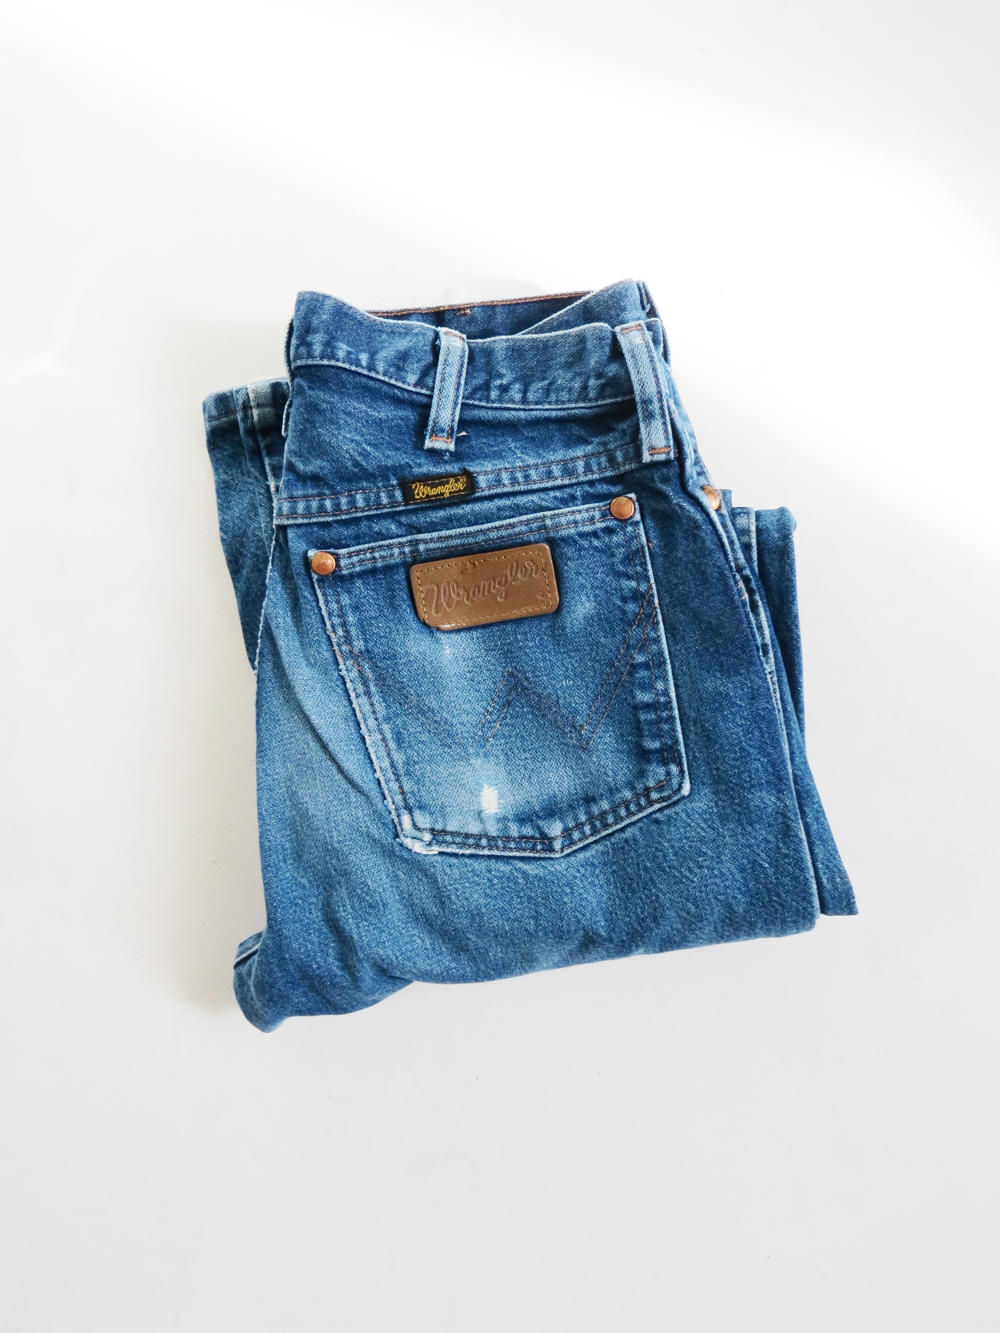 Vintage high waisted wrangler jeans